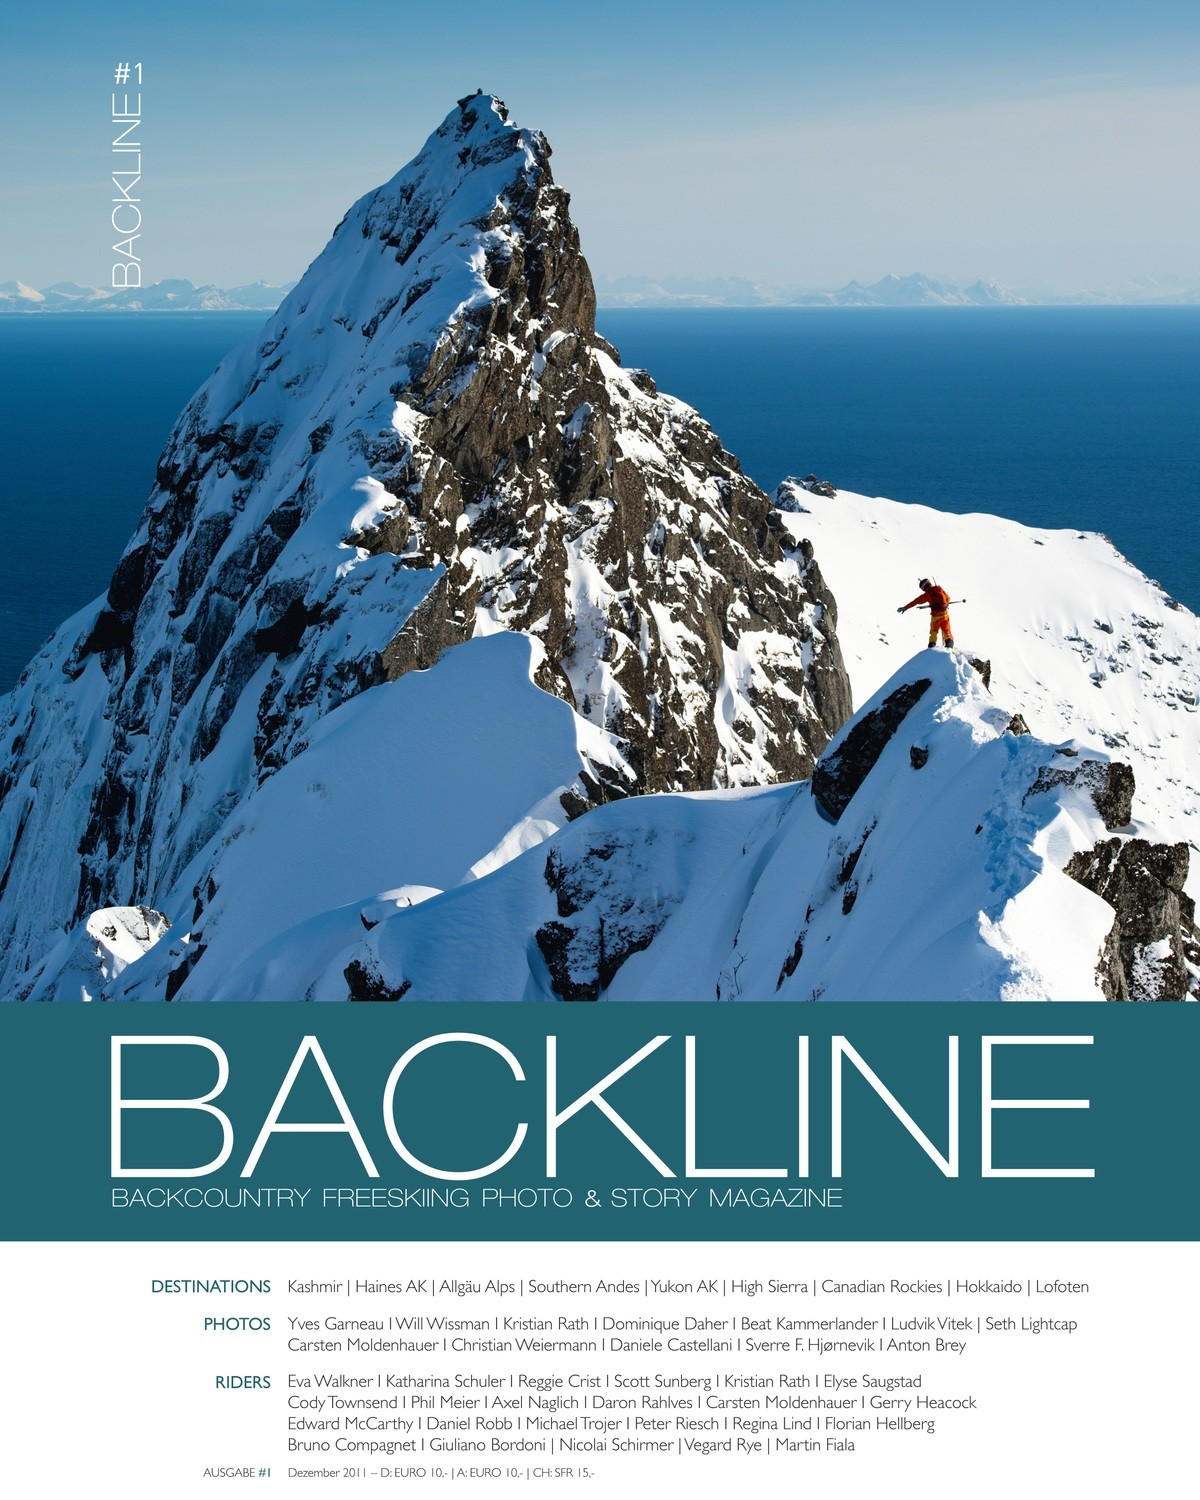 BACKLINE Backcountry Freeskiing Photo & Story Magazine 2011